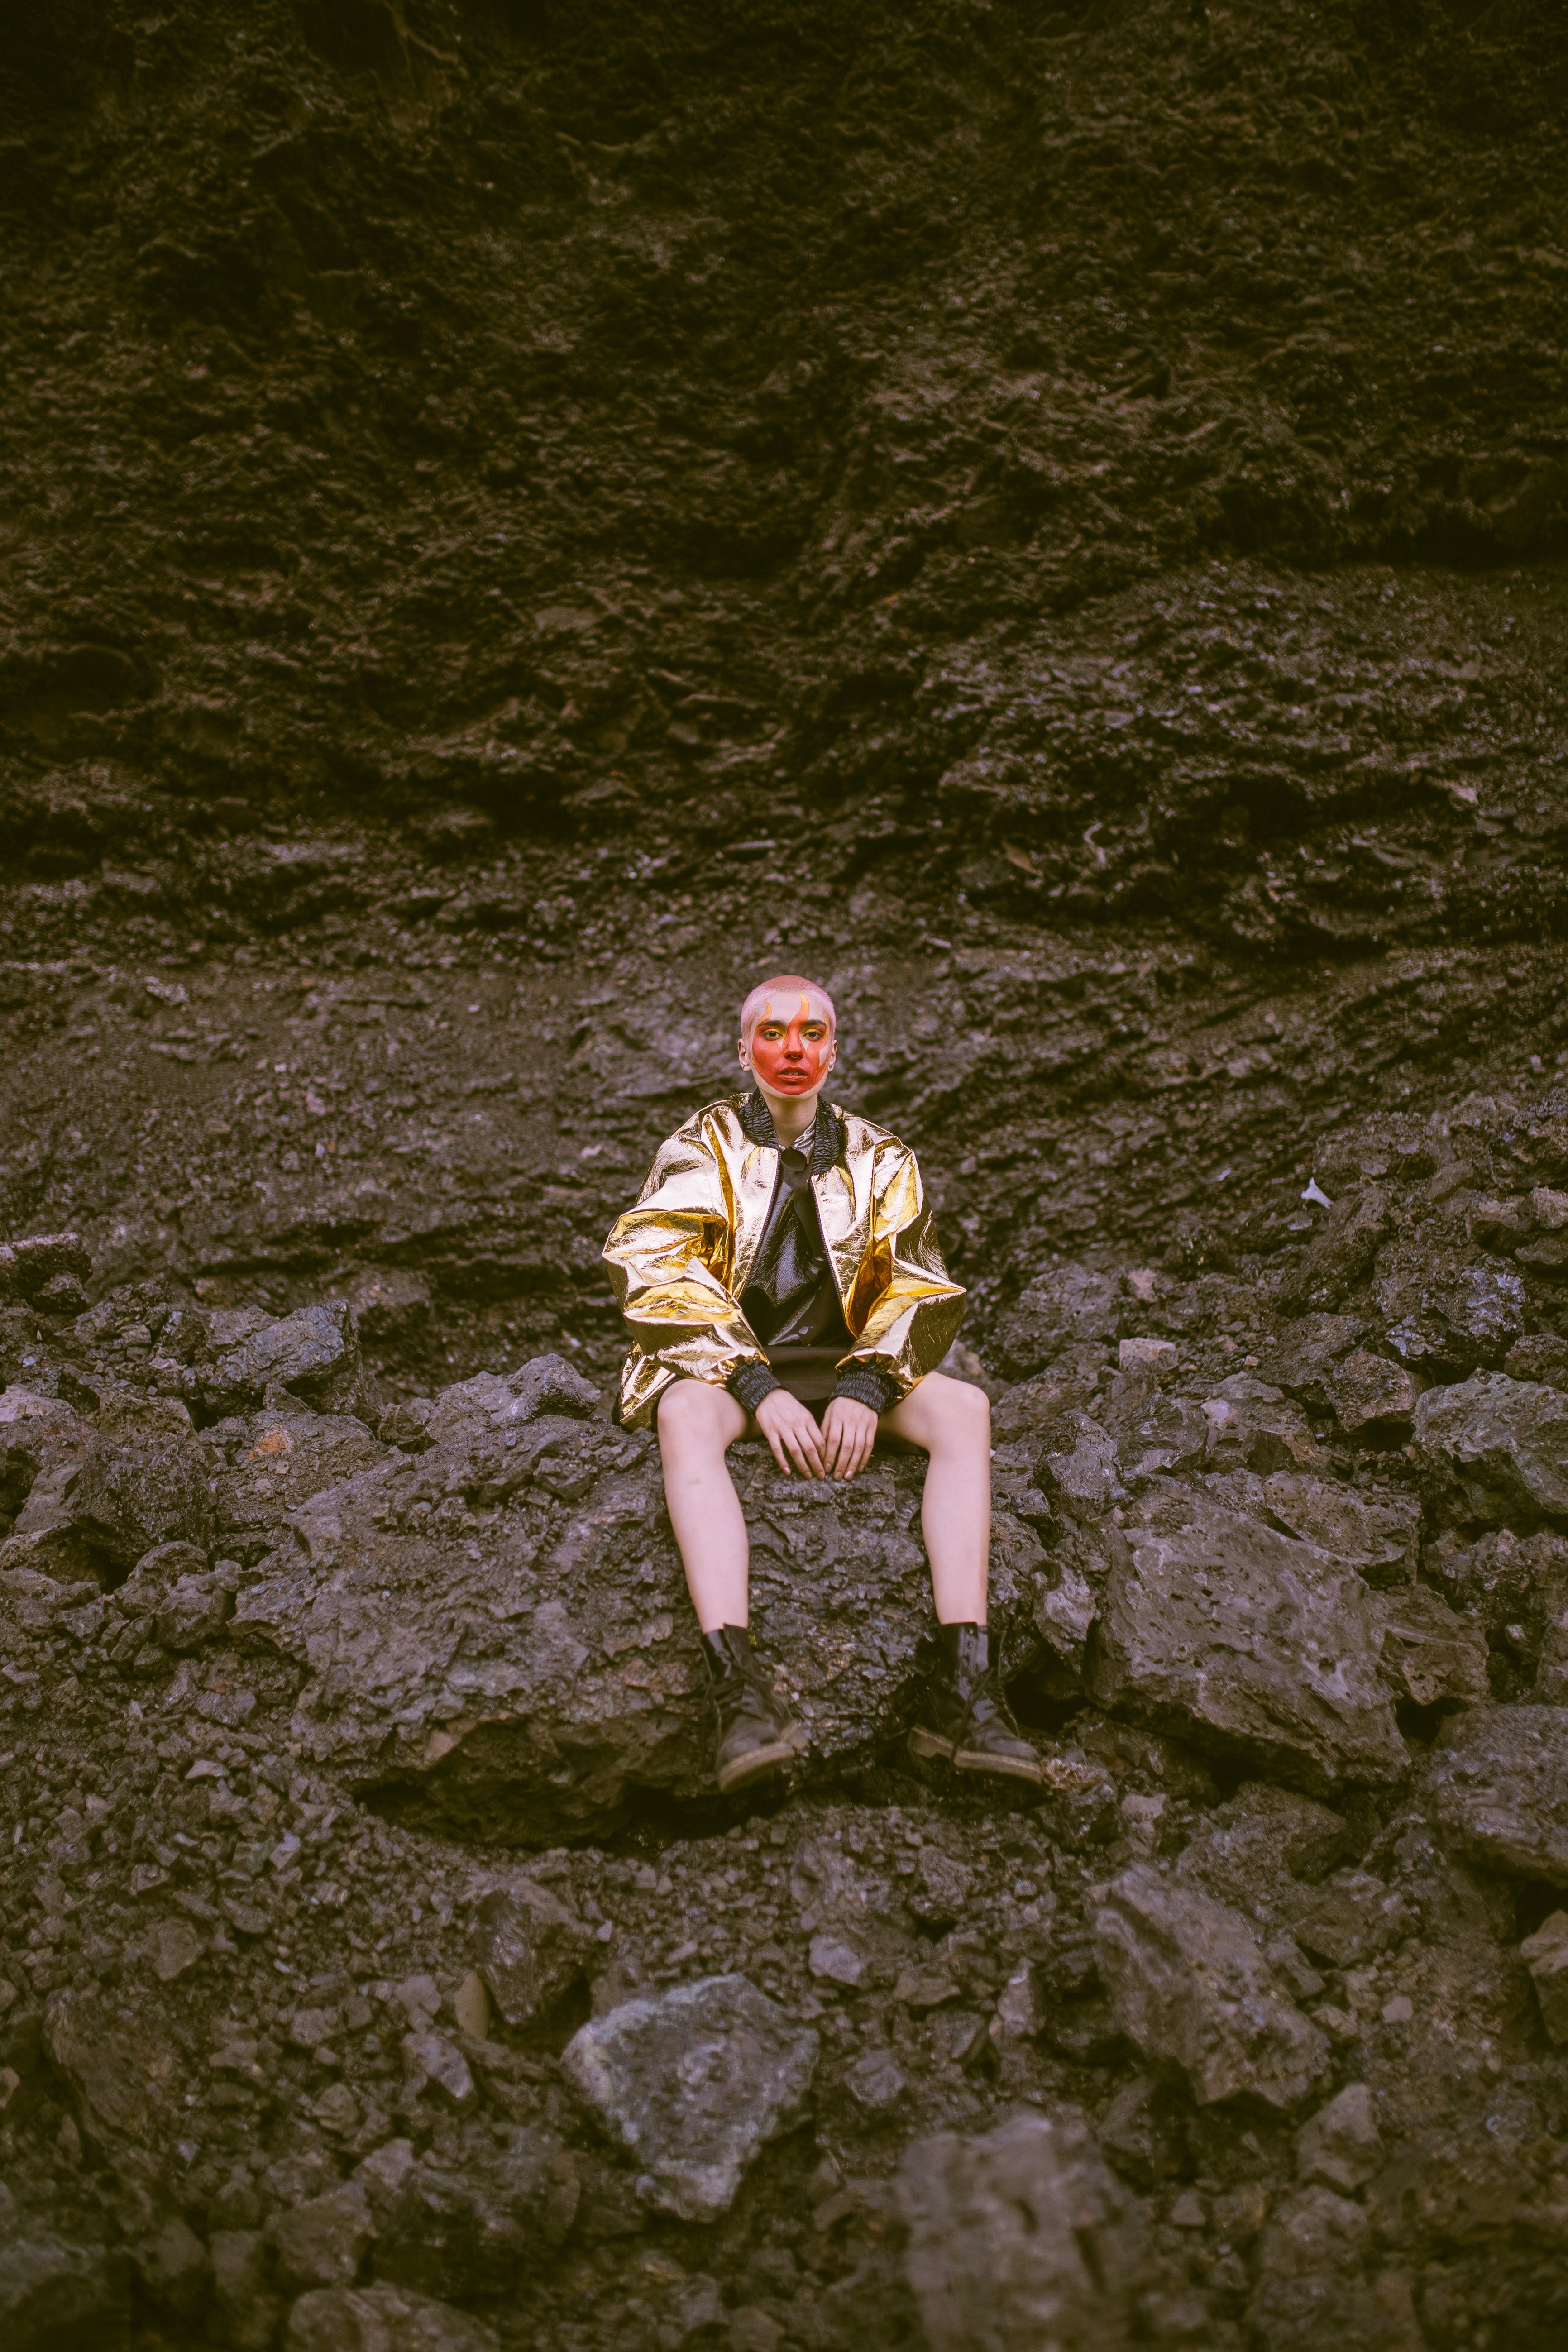 Man Wearing Gold Jacket Sitting on Stone